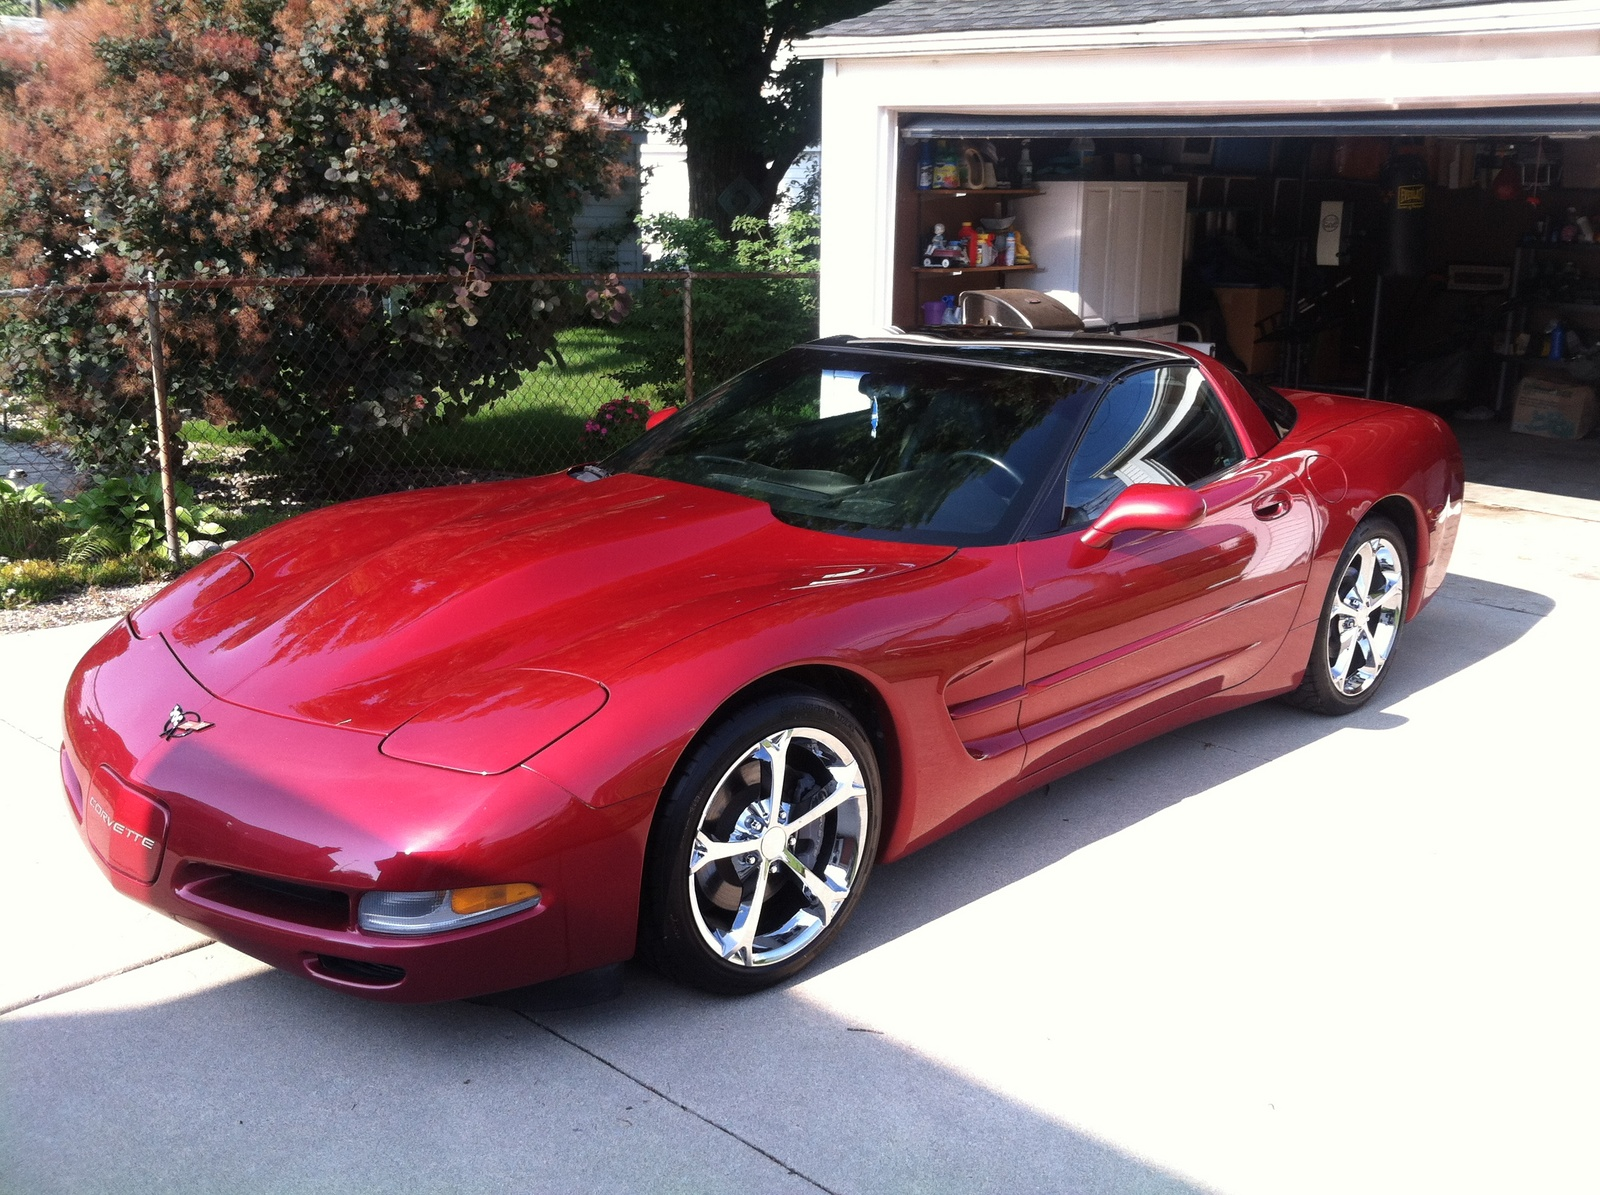 2013 chevrolet corvette coupe zr1 1zr yahoo. Black Bedroom Furniture Sets. Home Design Ideas